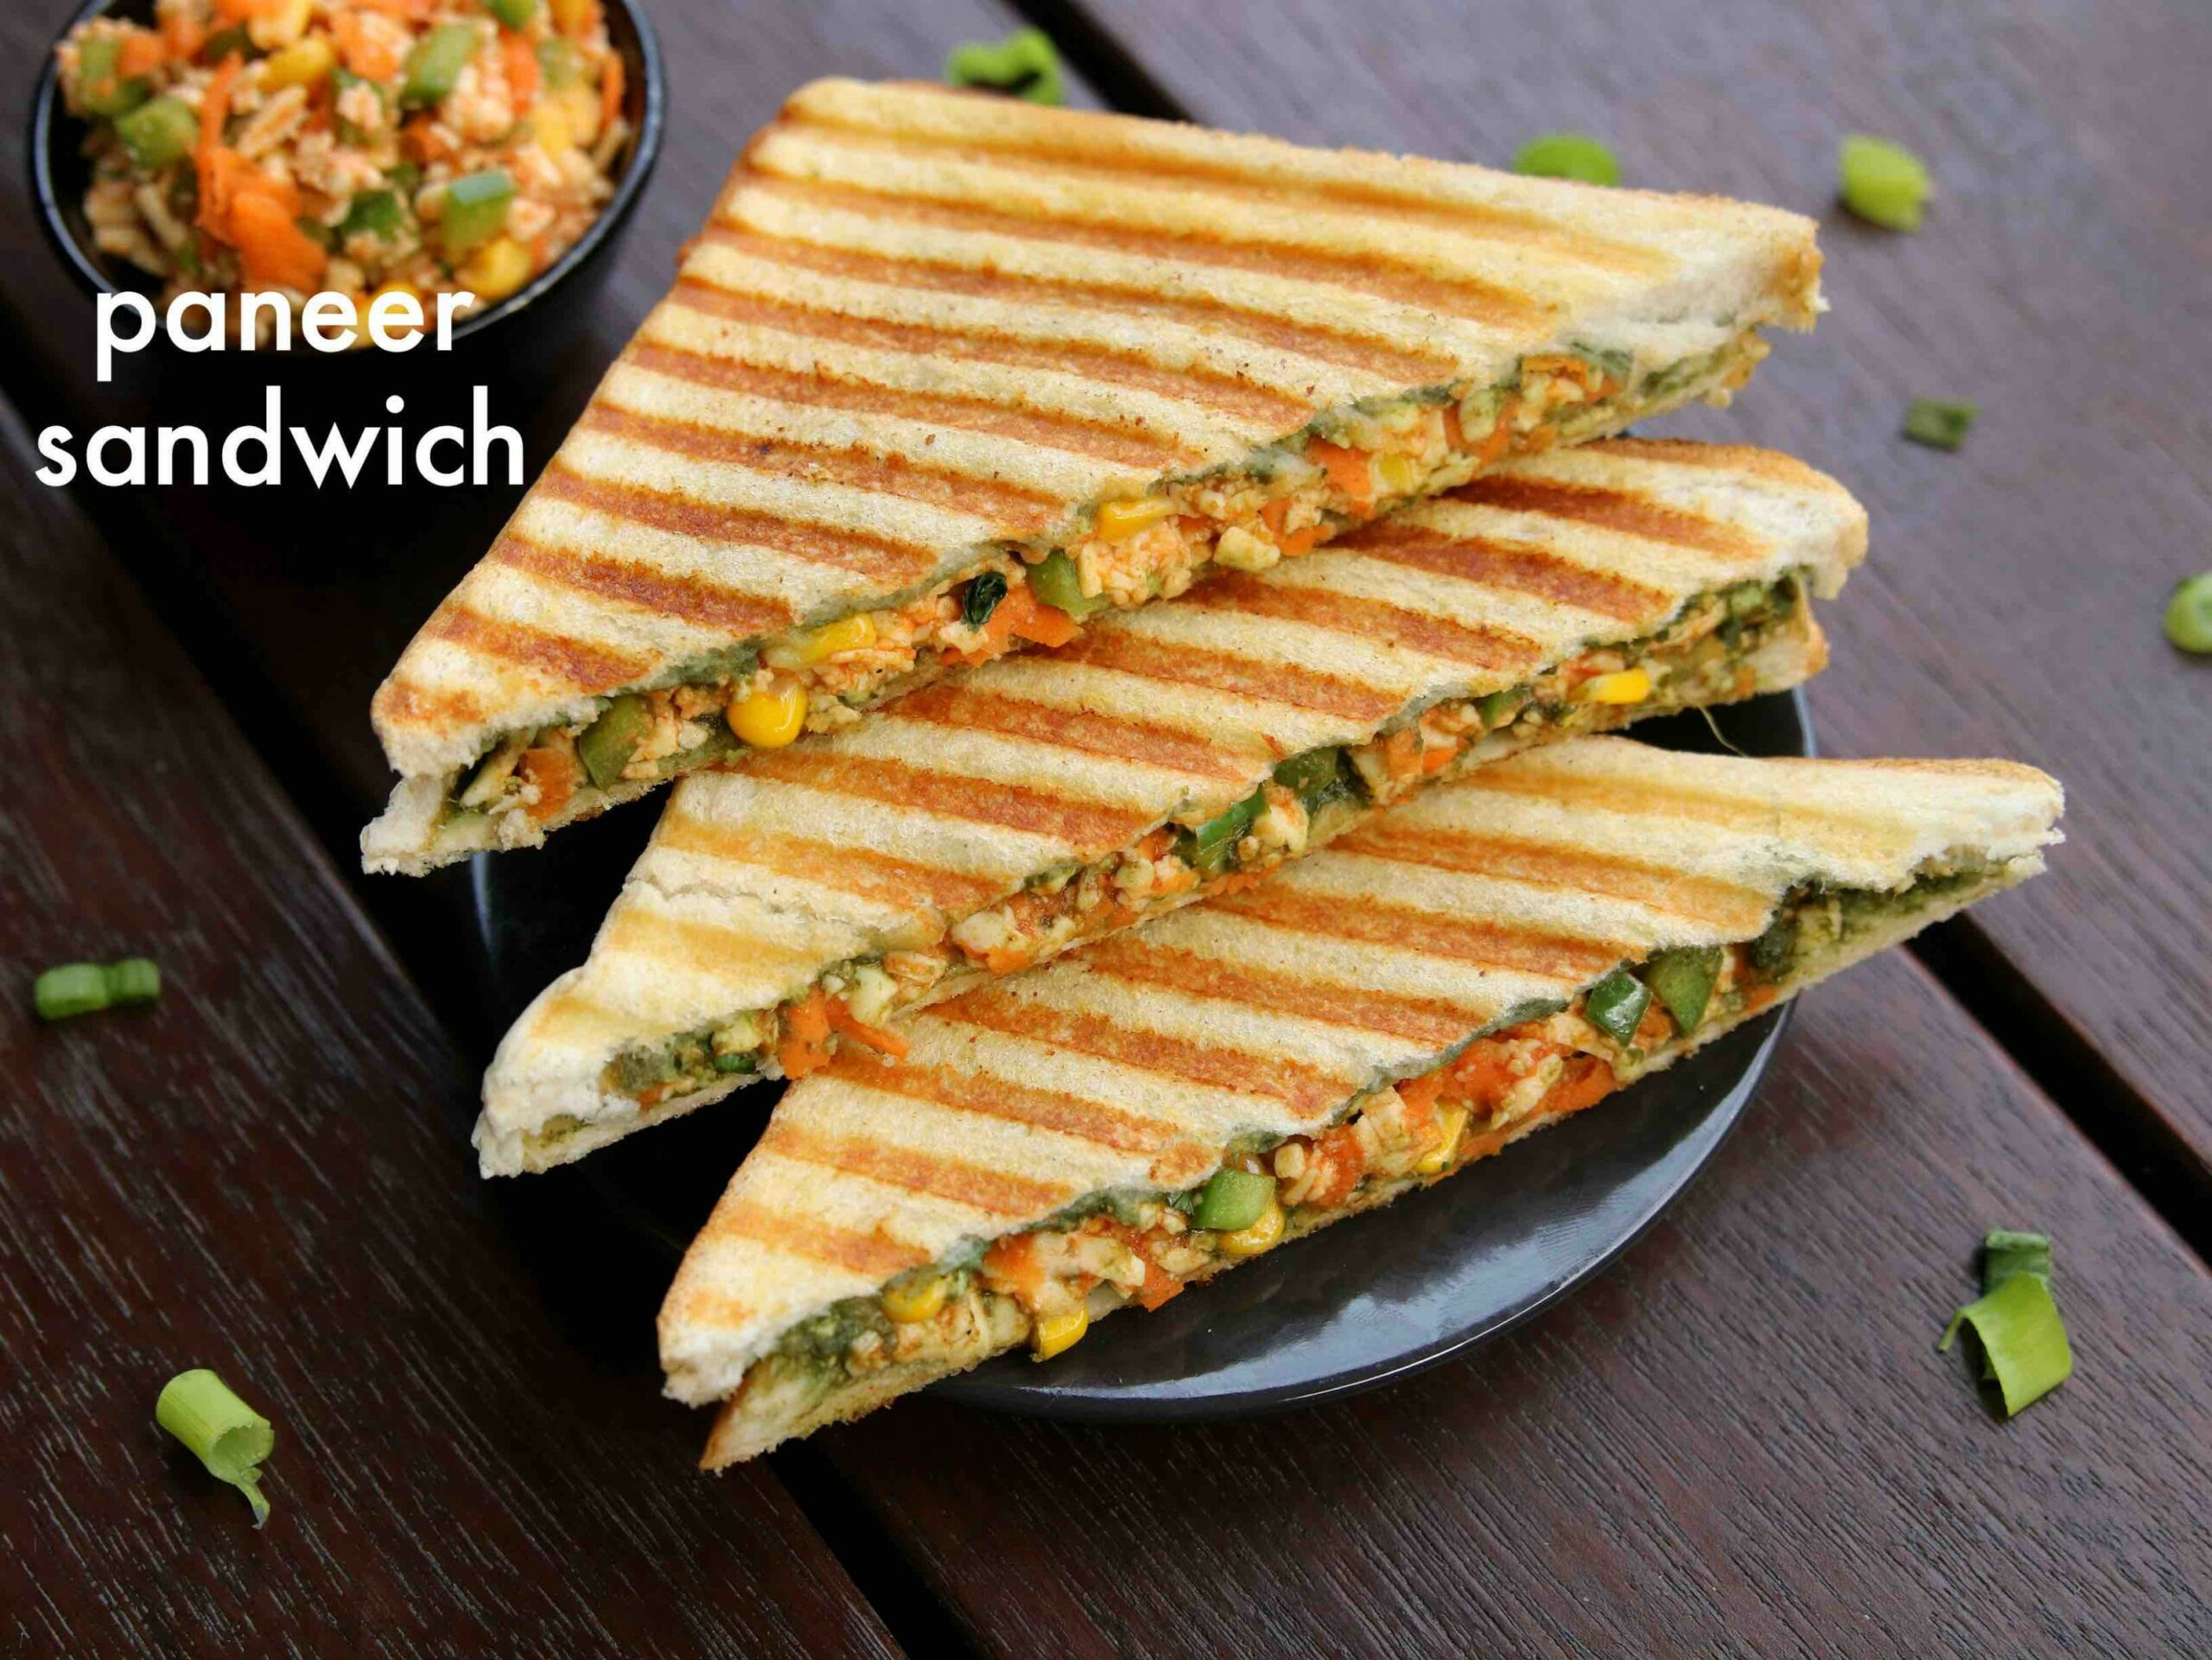 paneer sandwich recipe | how to make grilled paneer sandwich recipe - Sandwich Recipes Vegetarian Indian